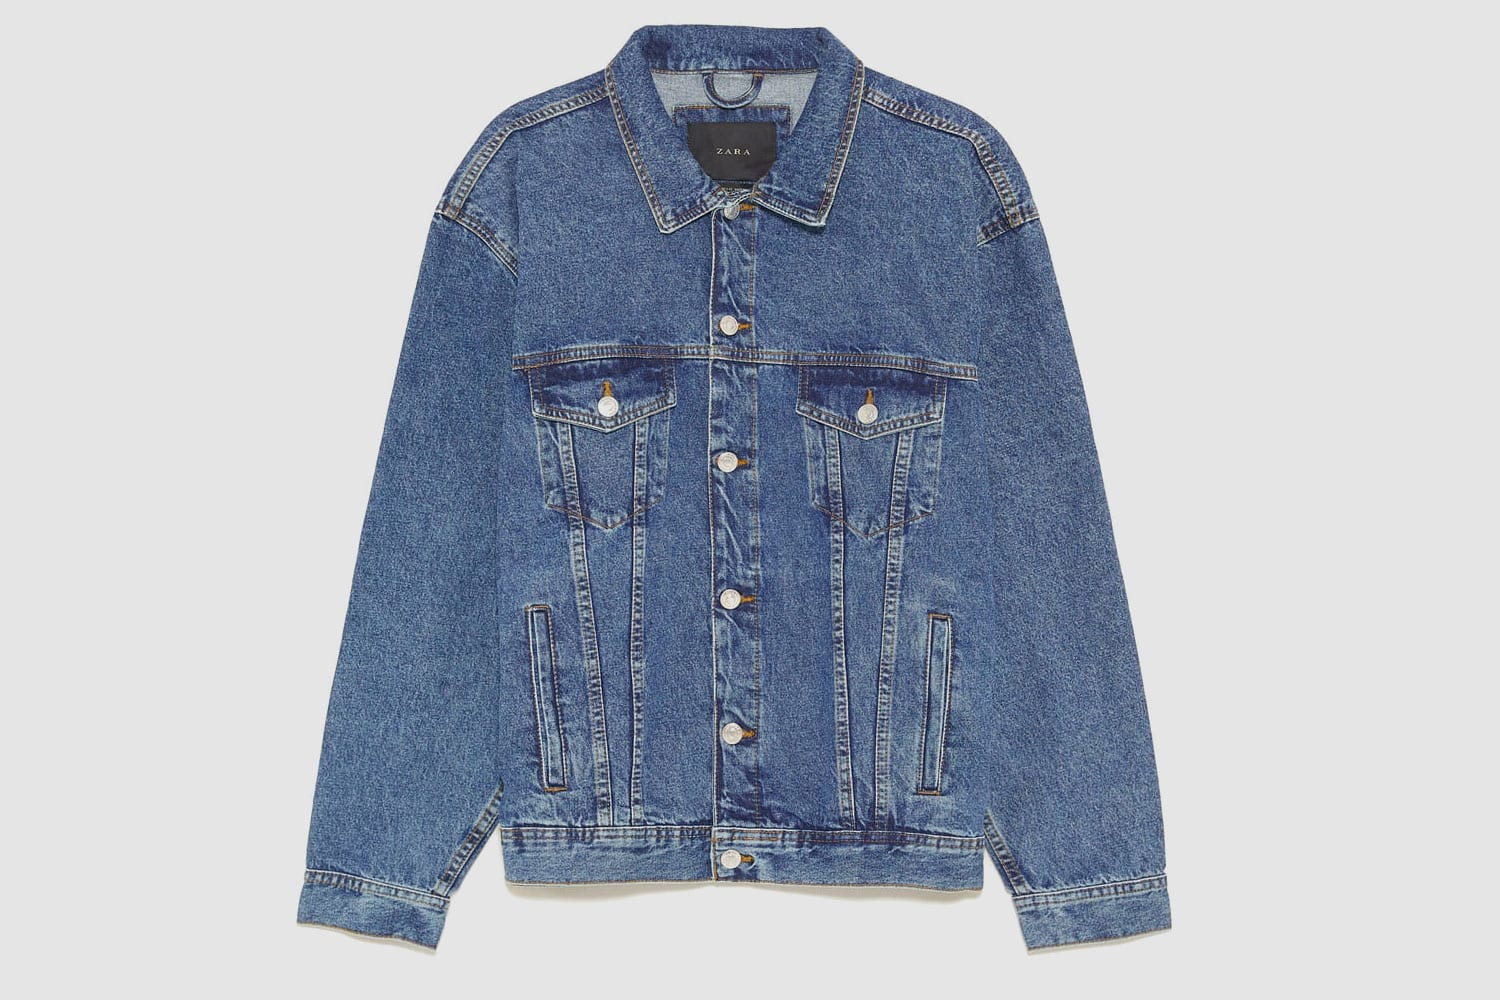 Zara-Oversized-Denim-Jacket